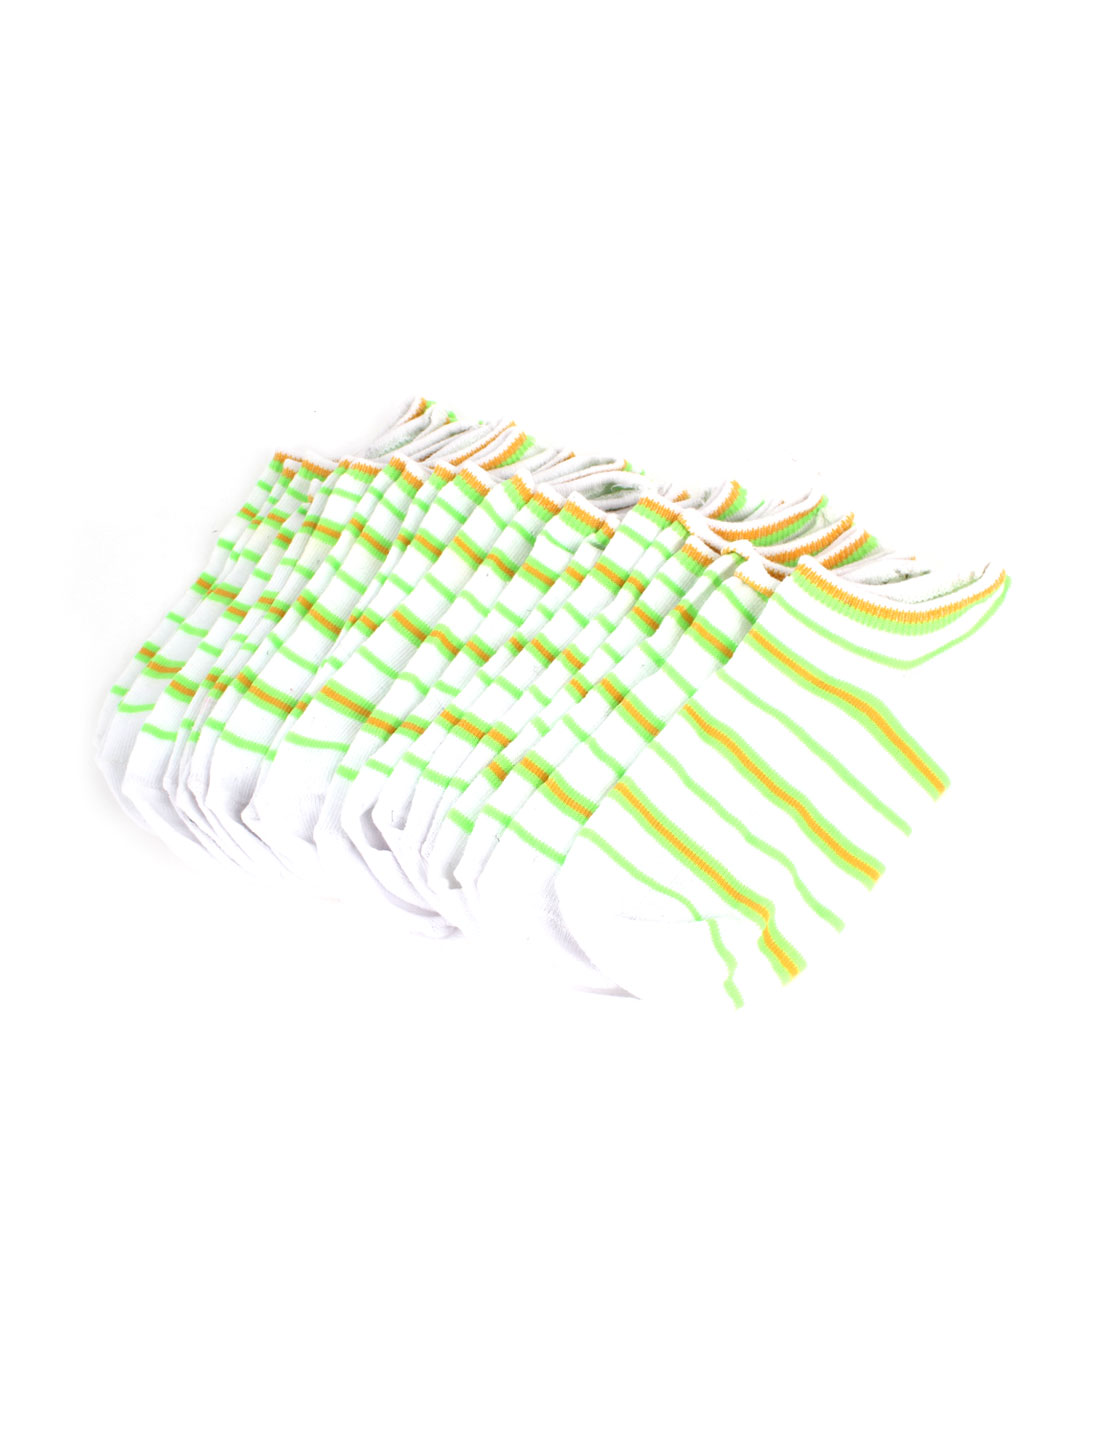 Women Stripe Pattern Stretchy Cuff Short Low Cut Ankle Hosiery Socks White Green Yellow 10 Pair